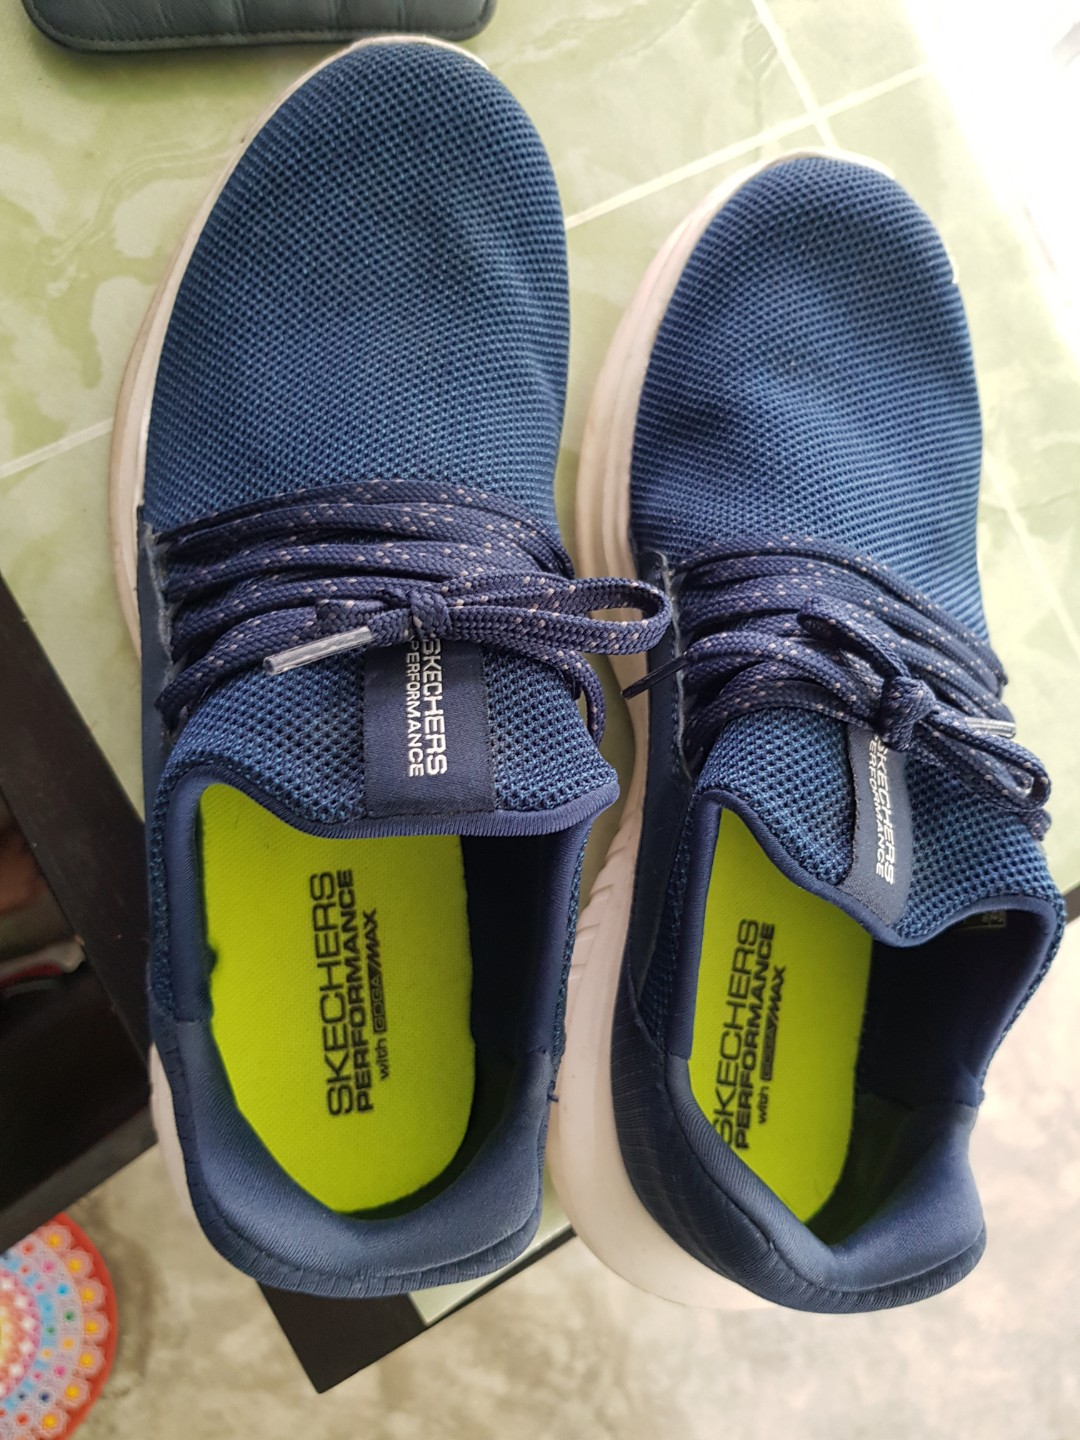 skechers performance with goga max